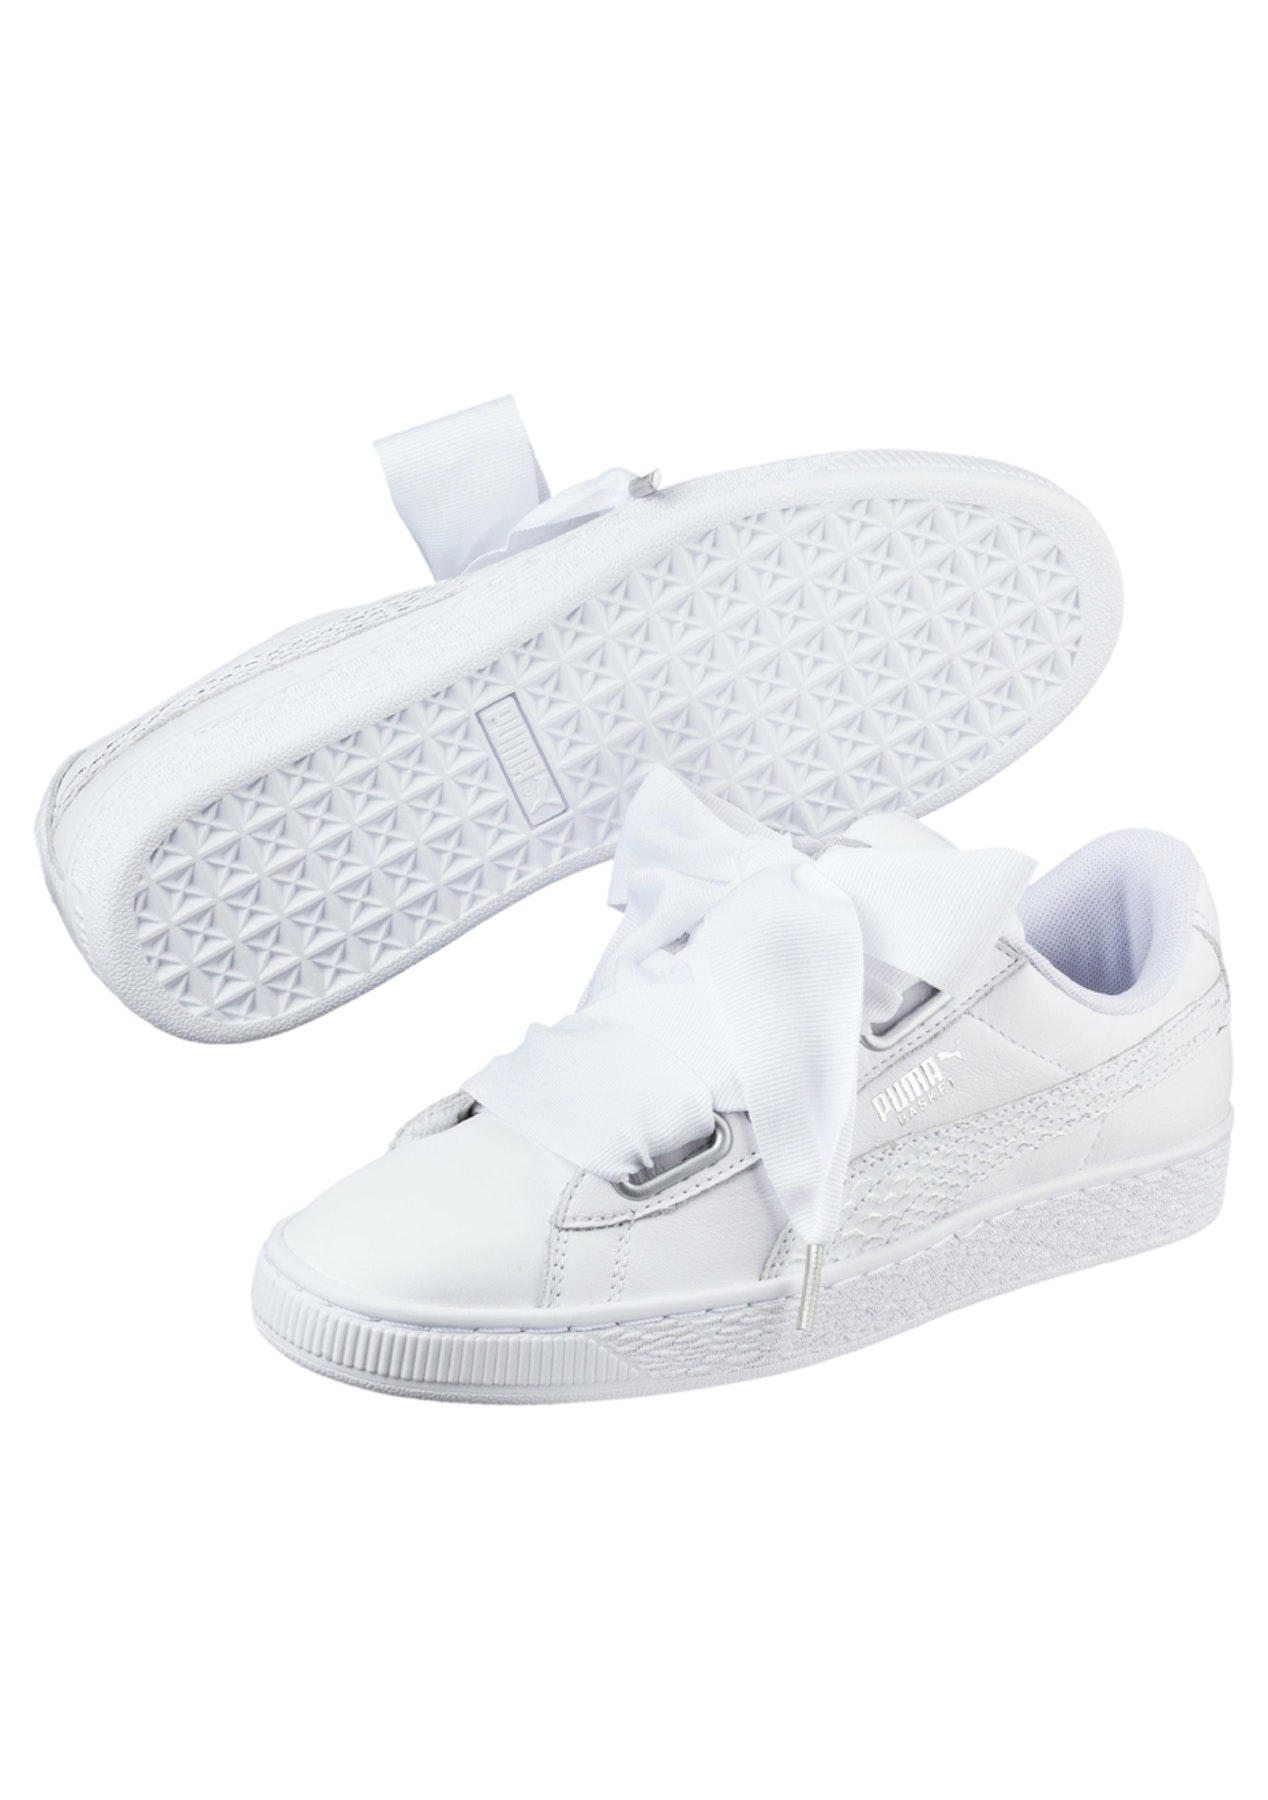 newest collection 5f62d 00860 Puma Womens - Basket Heart Oceanaire - White